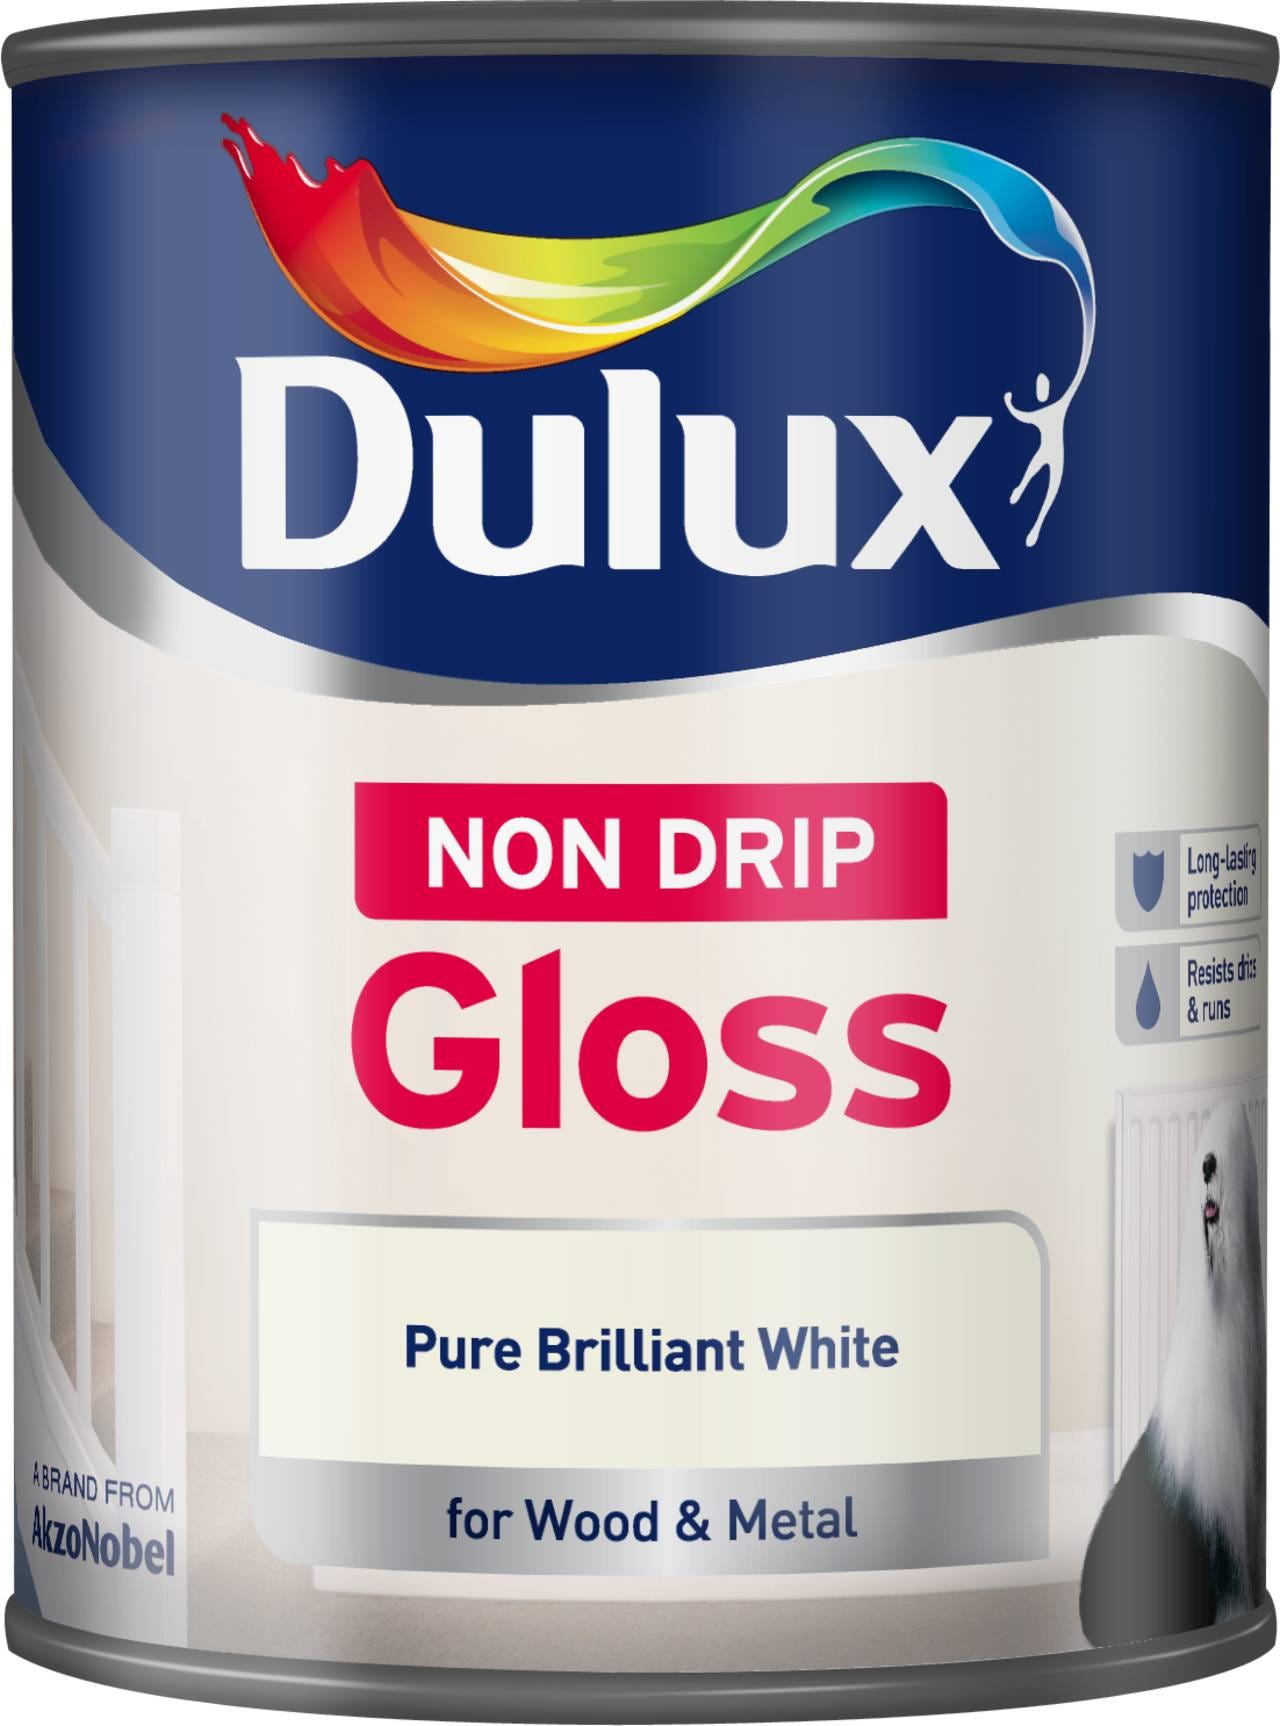 Image of Dulux Non-Drip Gloss Paint – Pure Brilliant White – 750ml